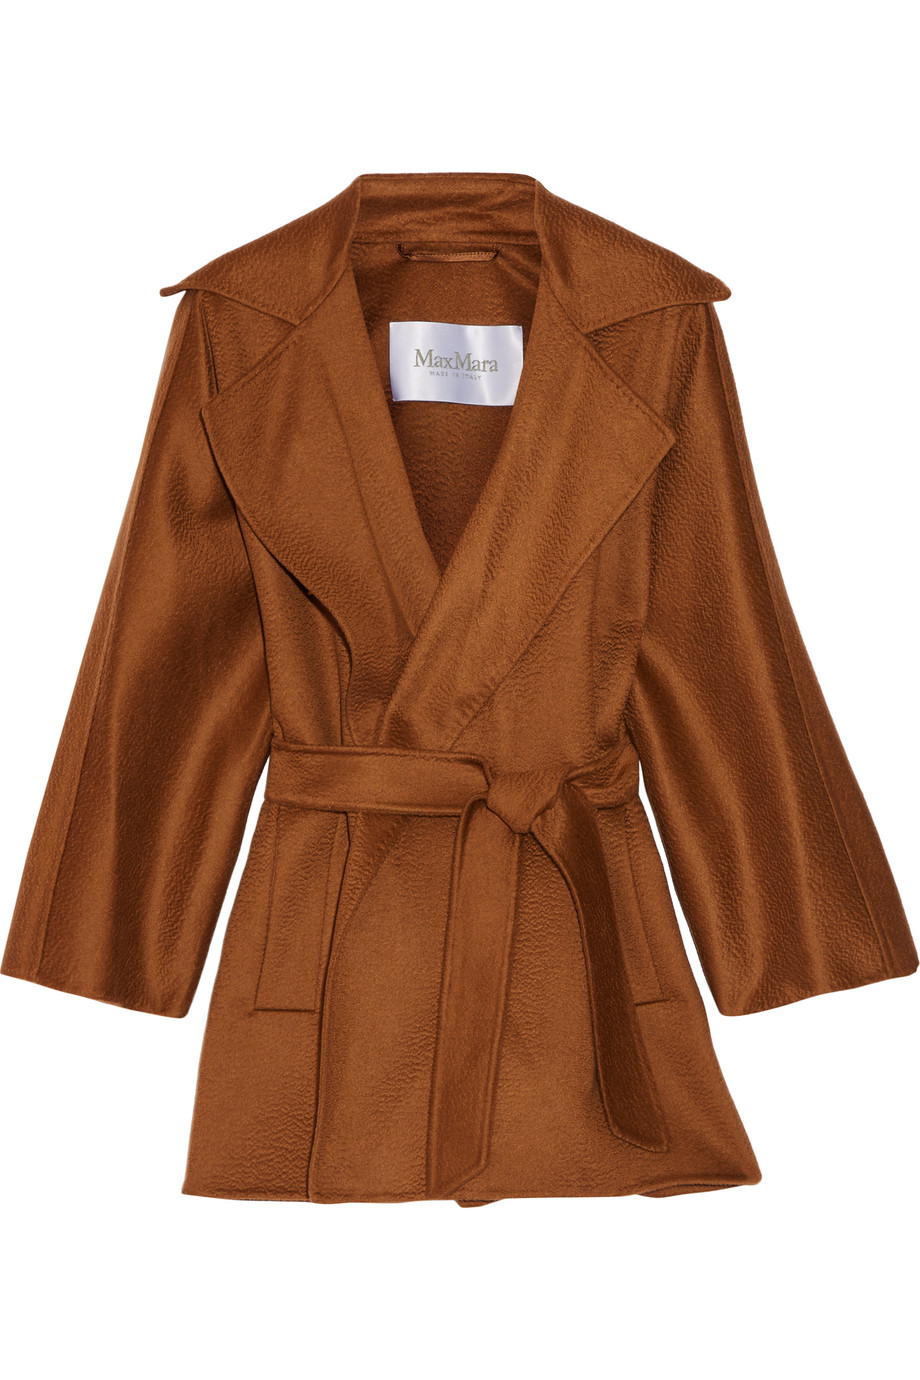 Gas Cashmere Wrap Coat, Size: 10